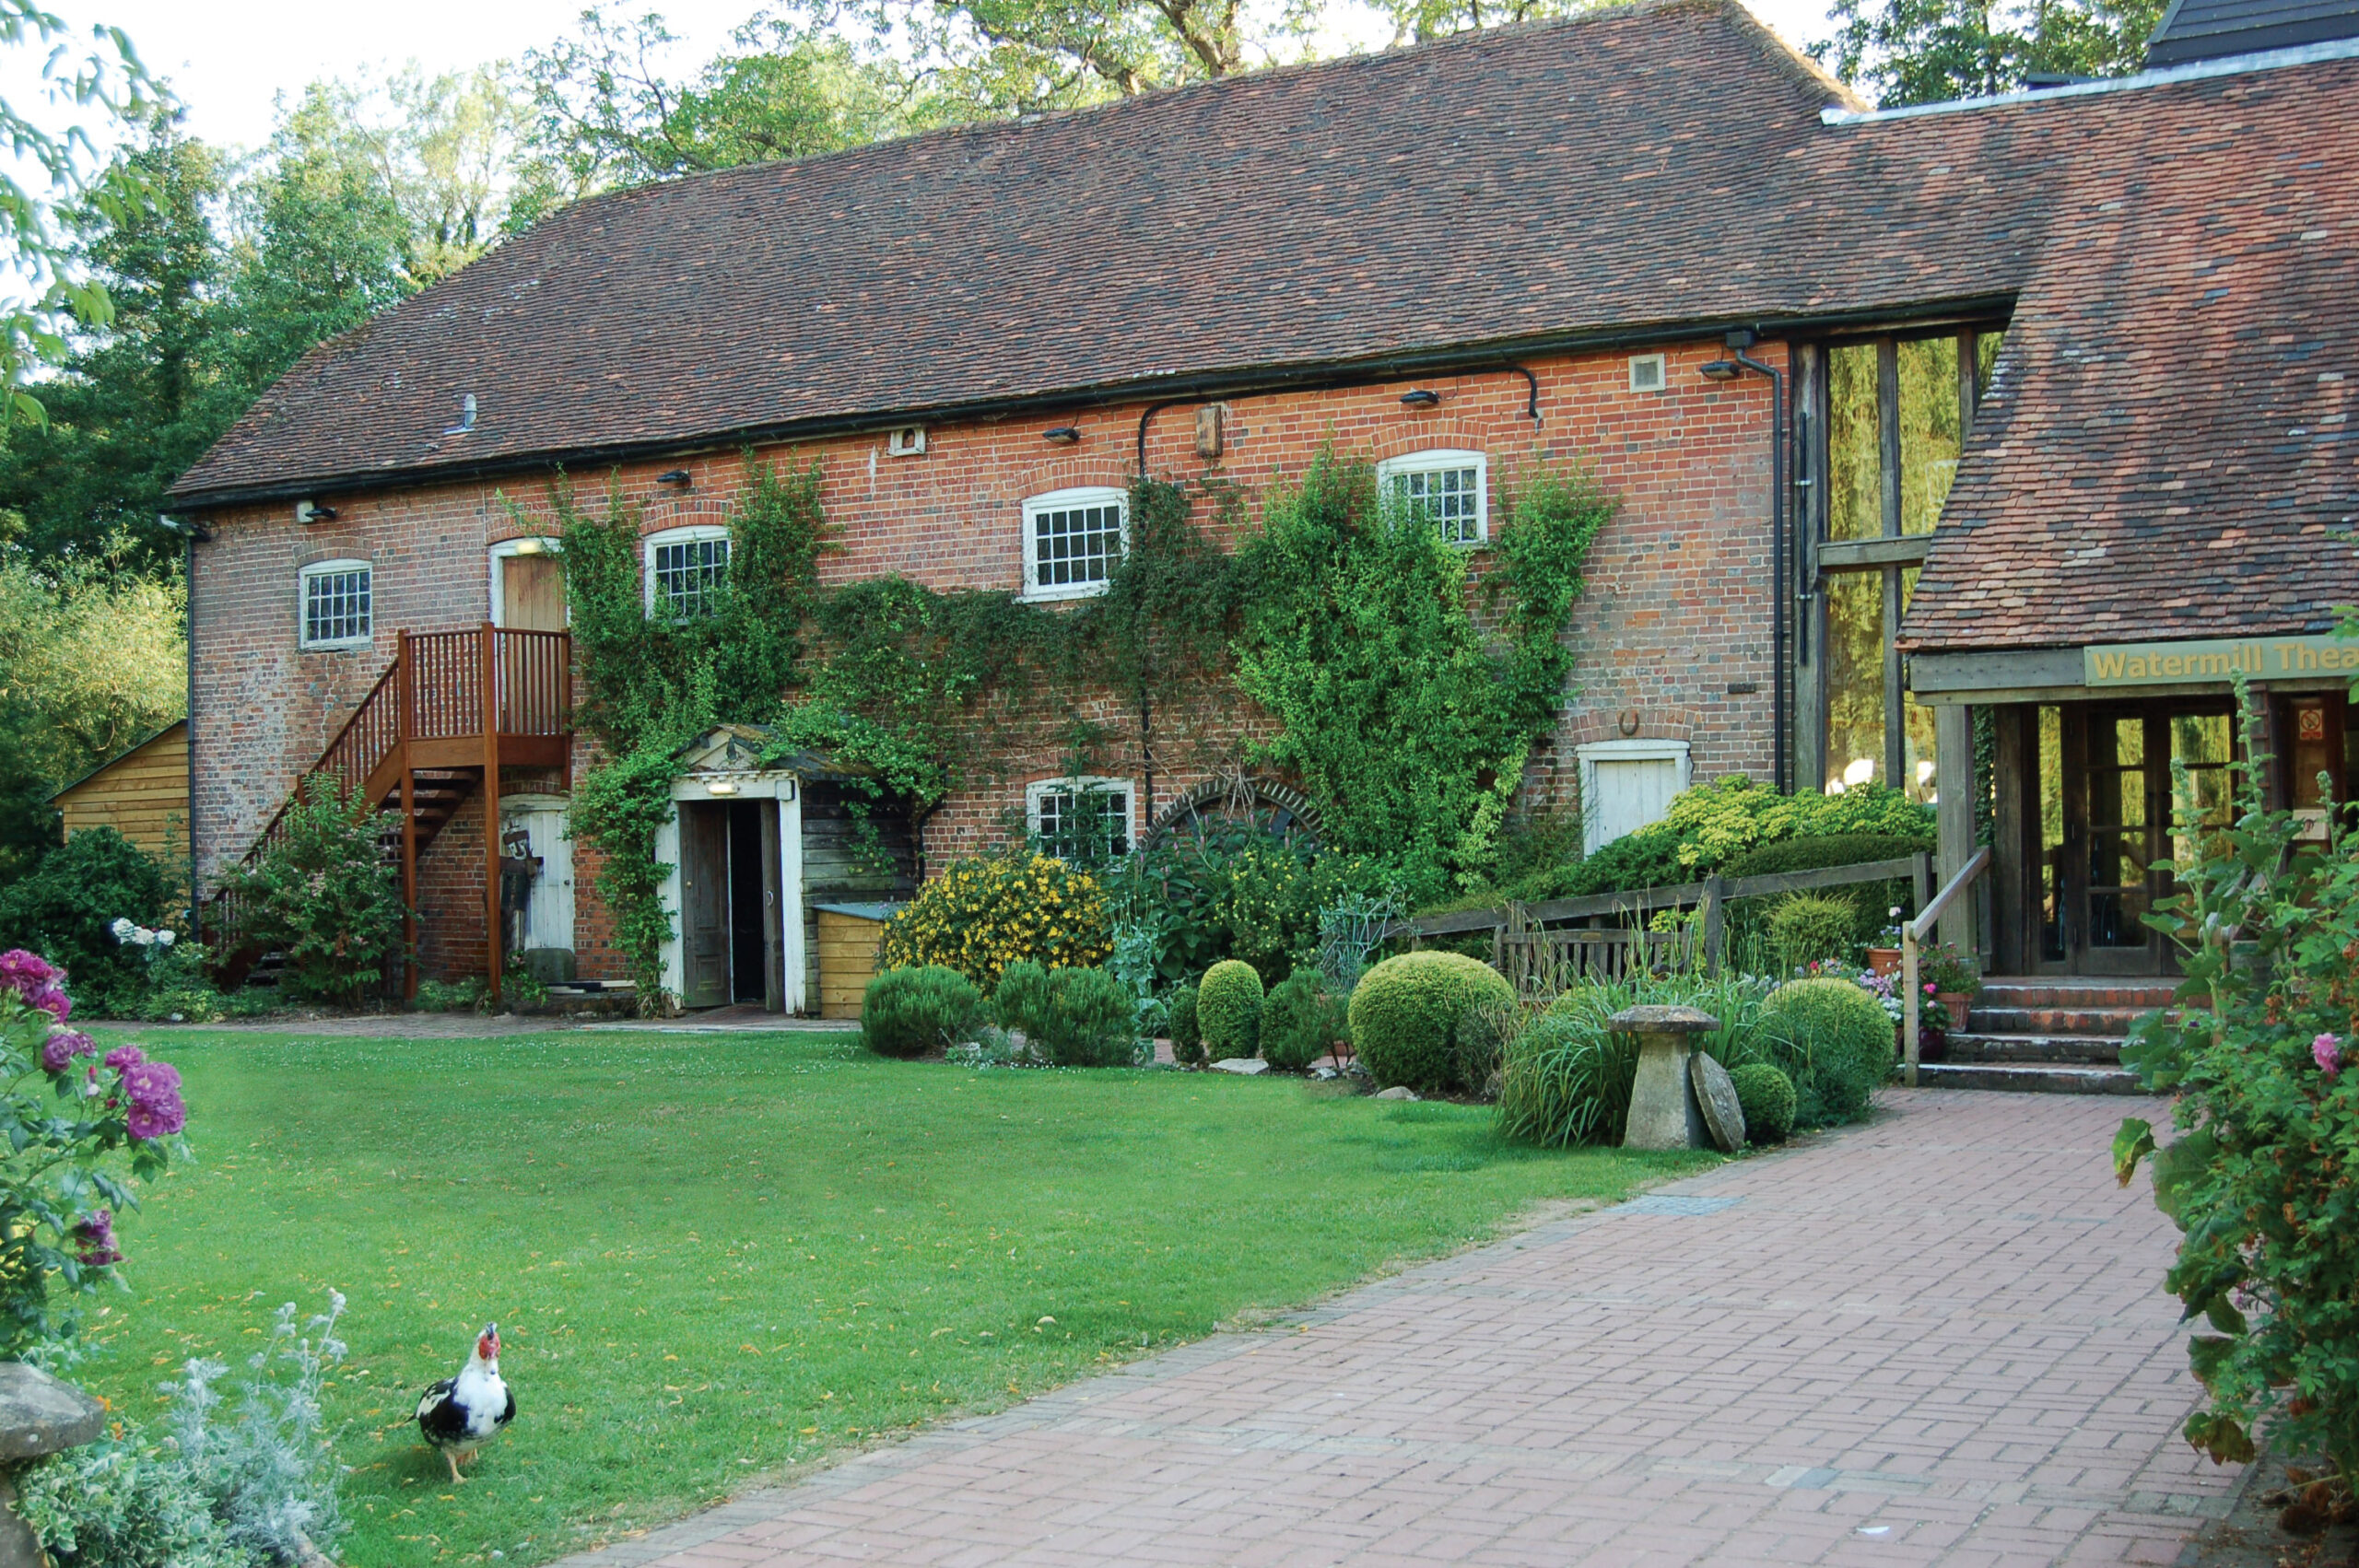 NEWS: The Watermill Theatre launches Full House Appeal after failing to get Funding